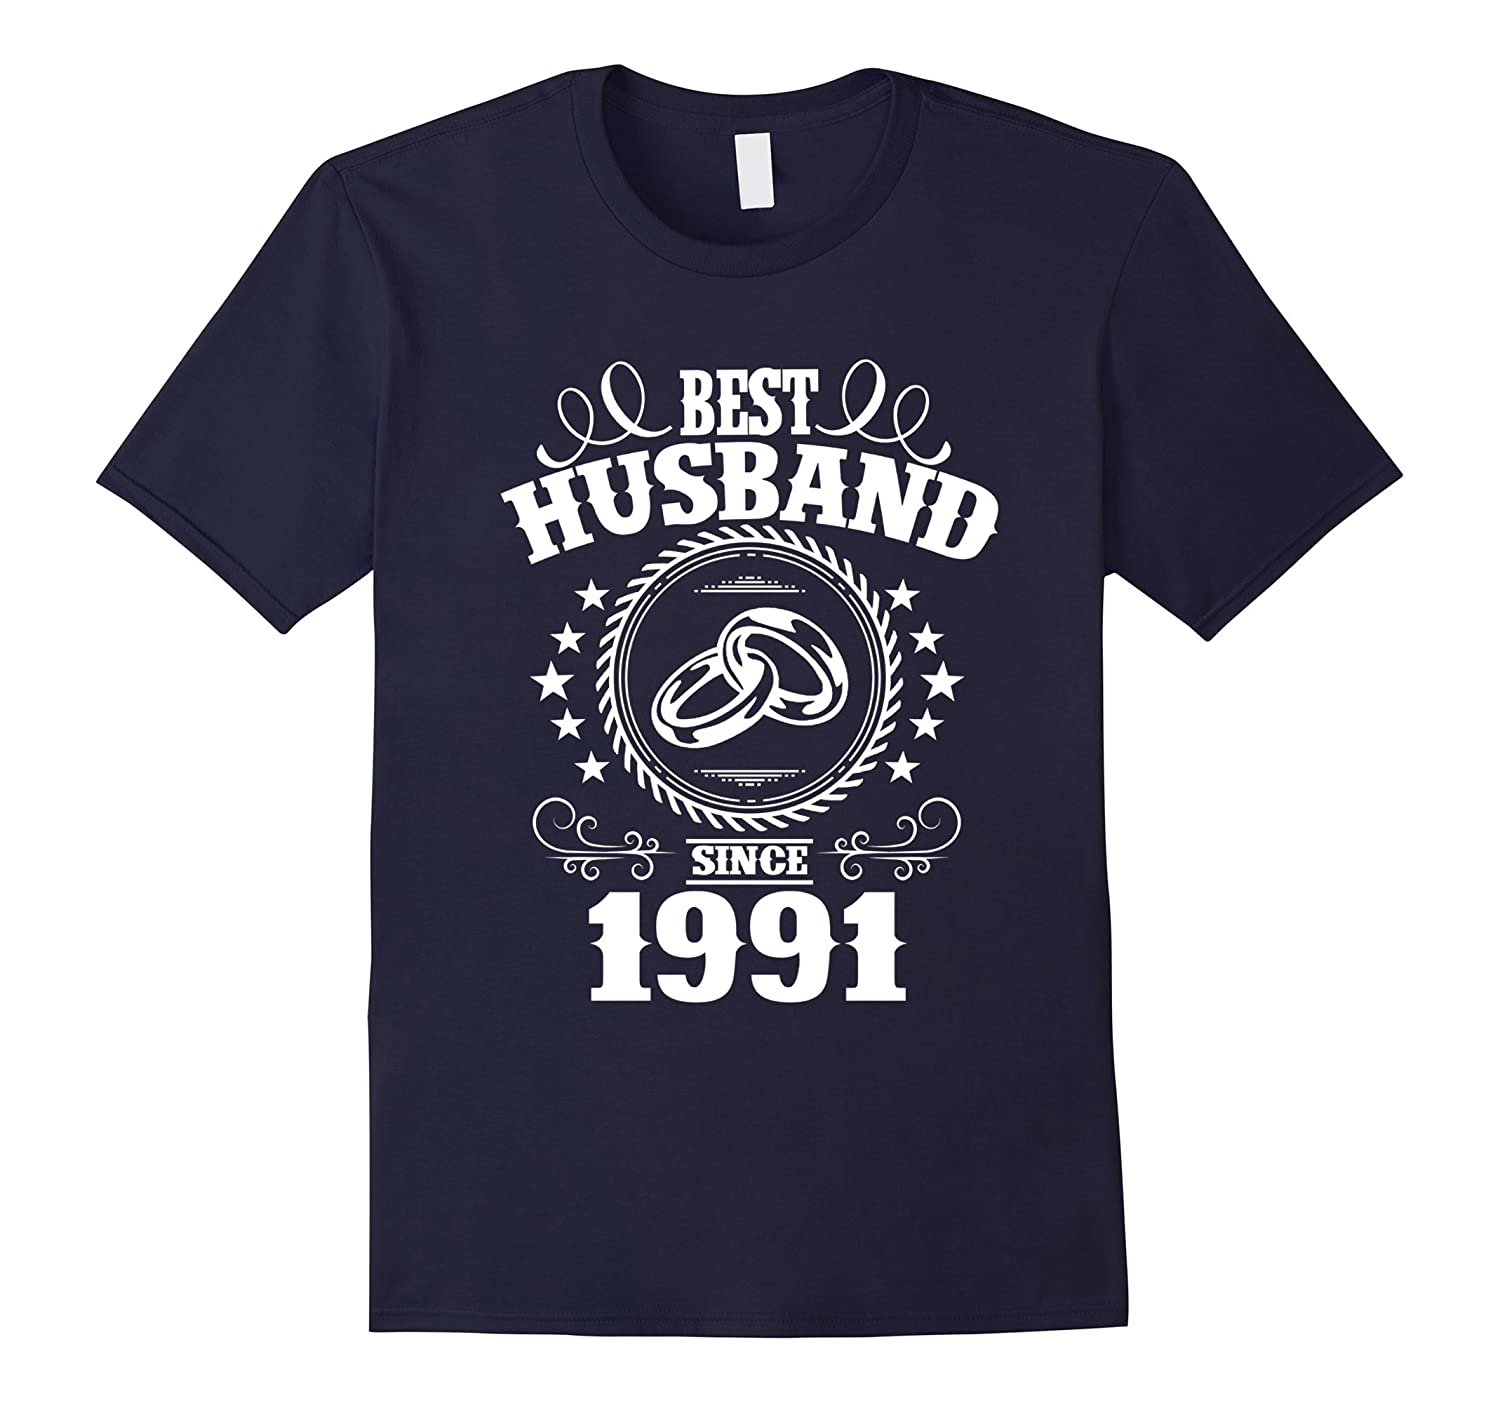 26th Wedding Anniversary T-Shirts For Husband From Wife-PL